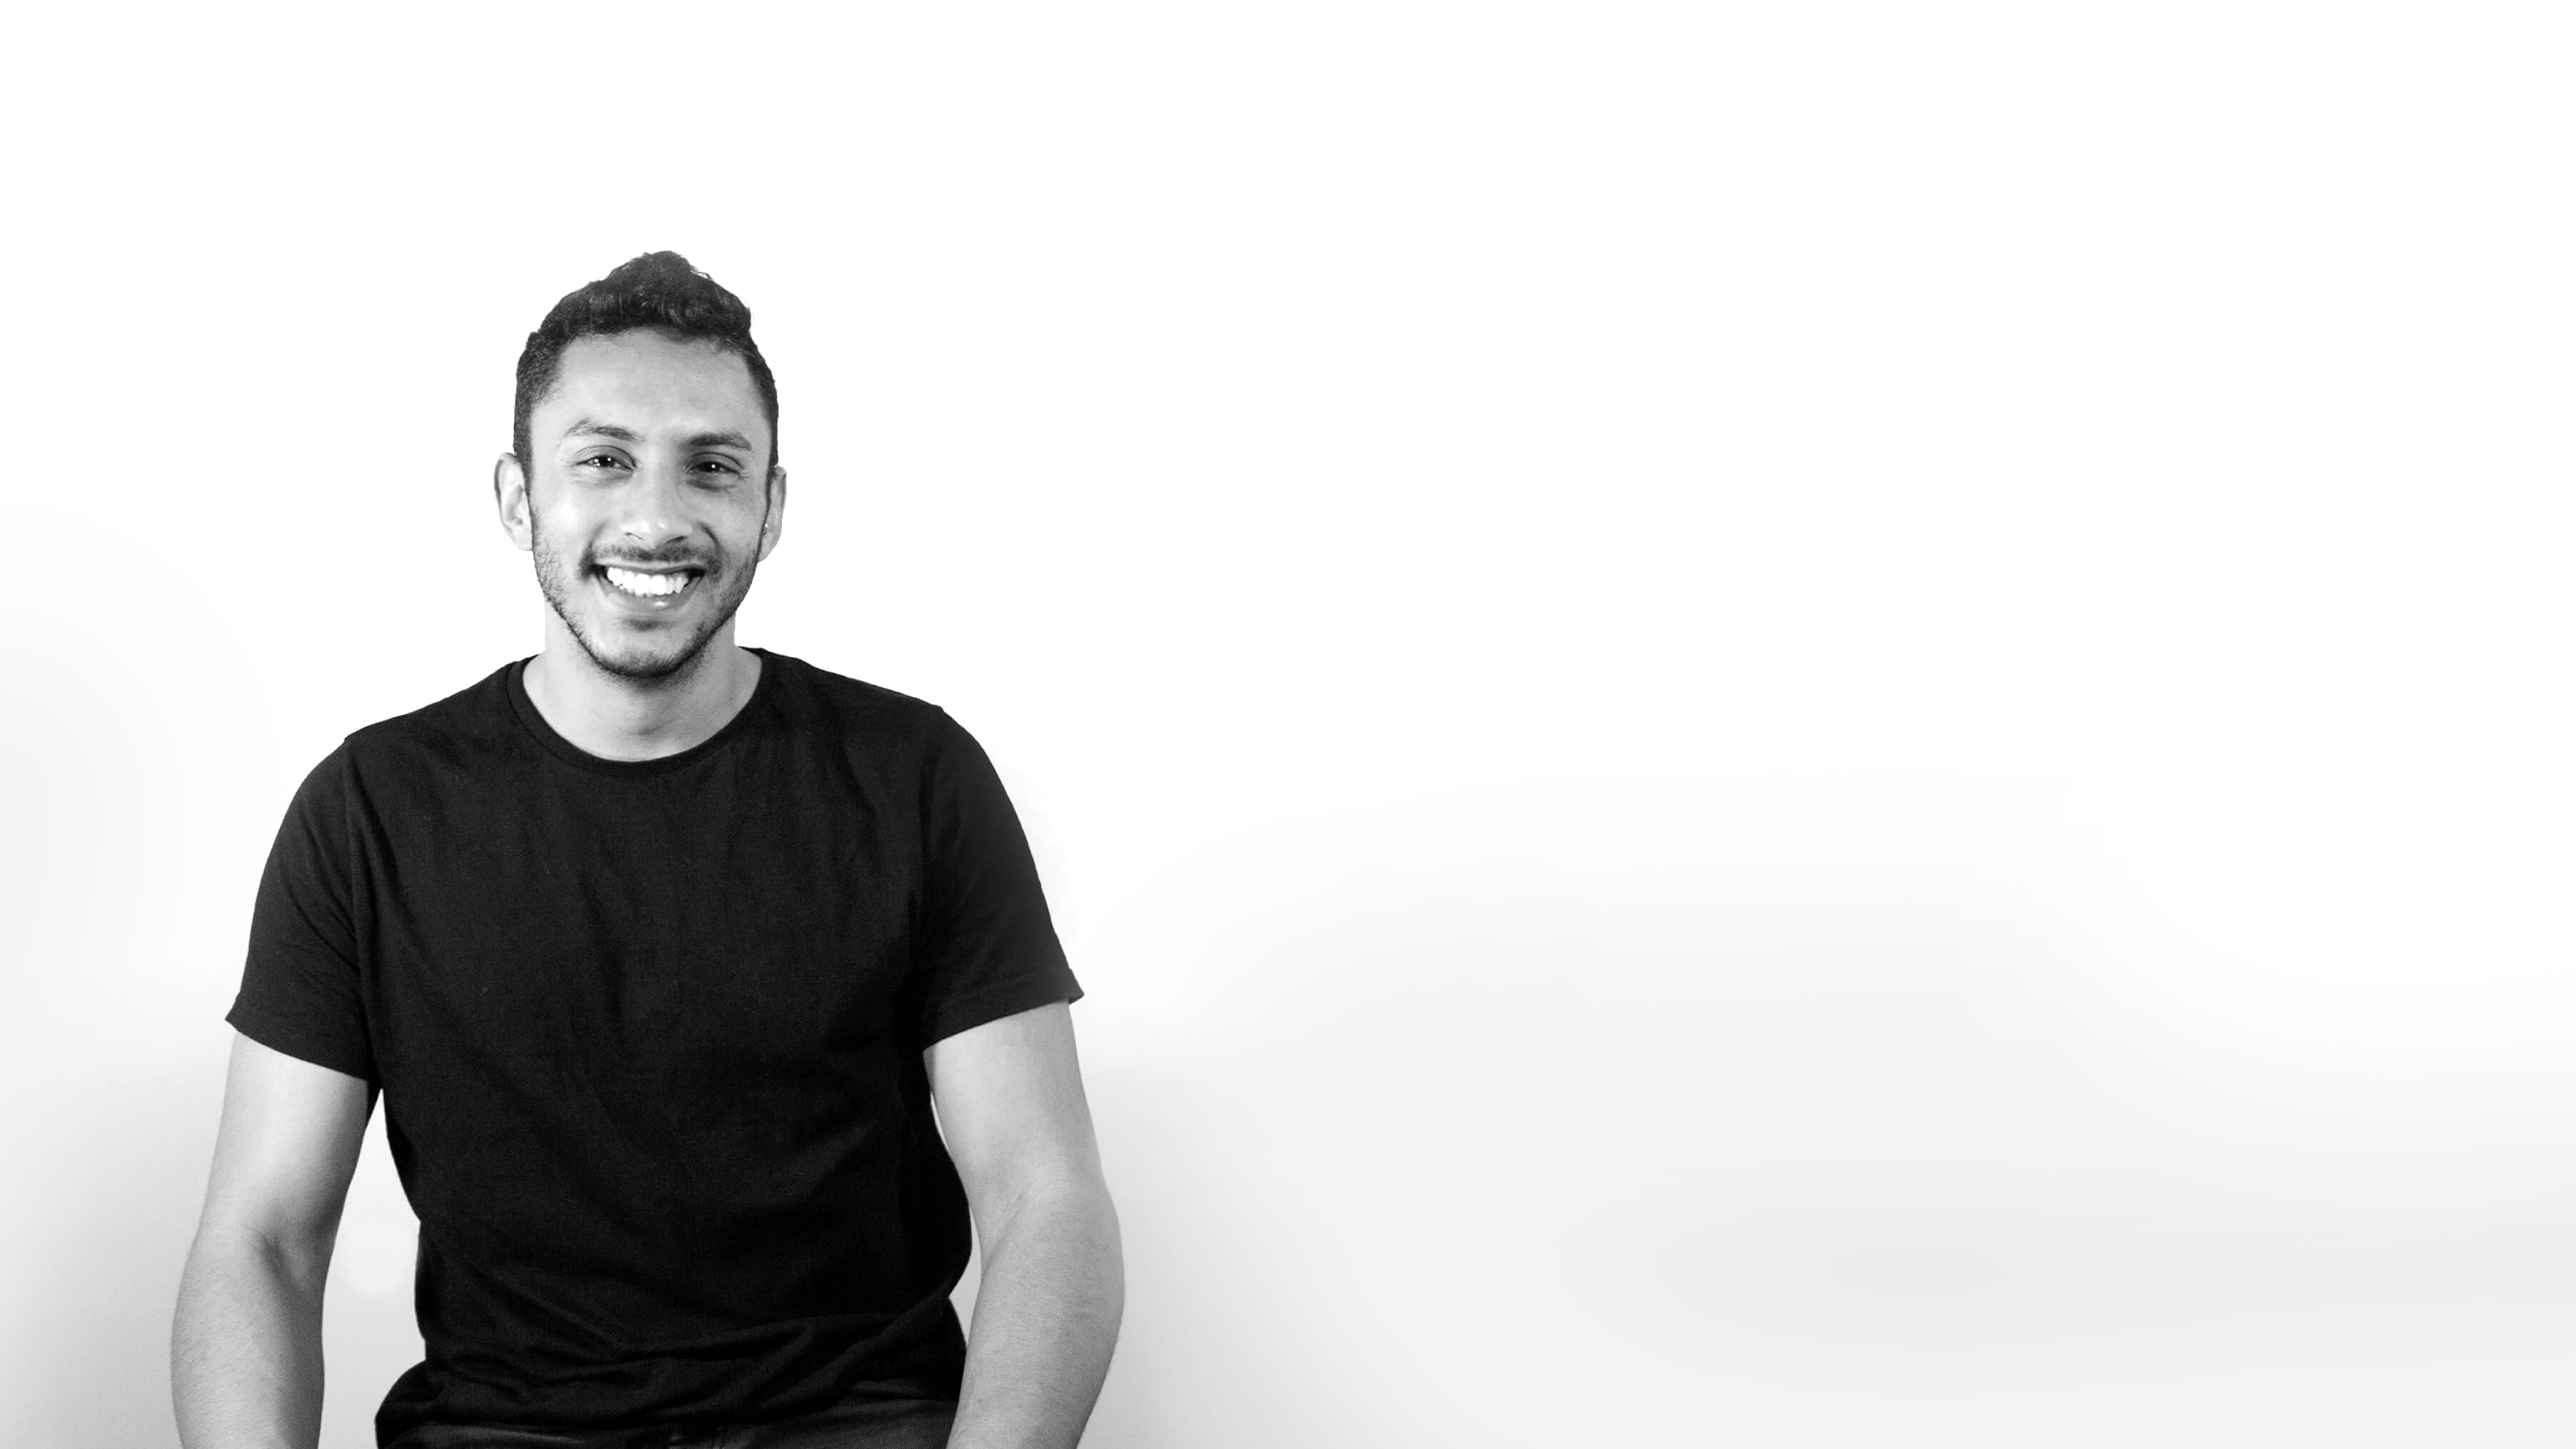 I am Omri Hillel, a Multi-disciplinary Designer.I believe in products that grow and evolve with their users.After practicing both graphic and industrial design, I found my passion in UI/UX.My specializations are visual interface and information architecture.